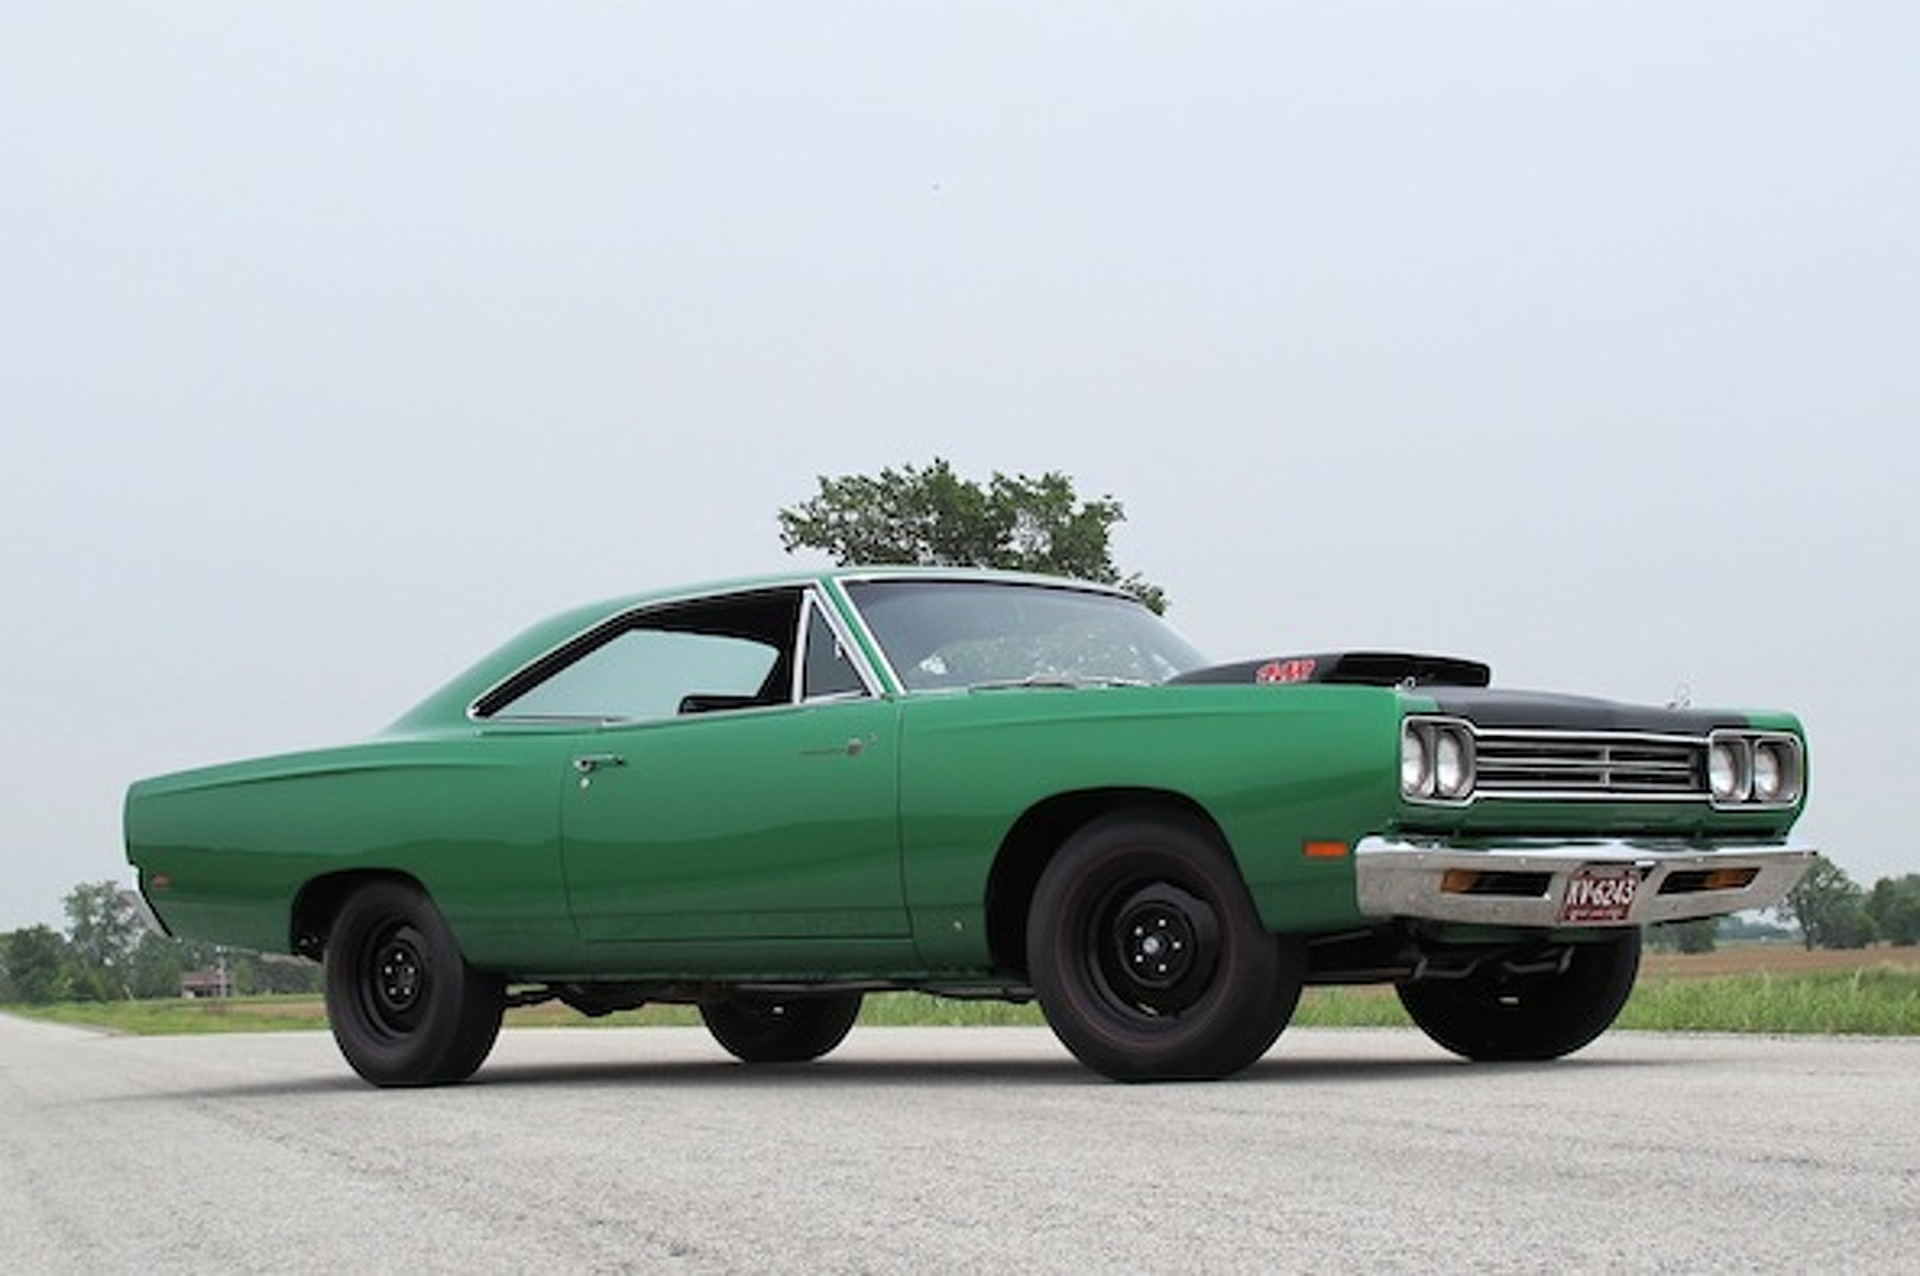 The Plymouth Road Runner A Muscle Car For The Rest Of Us